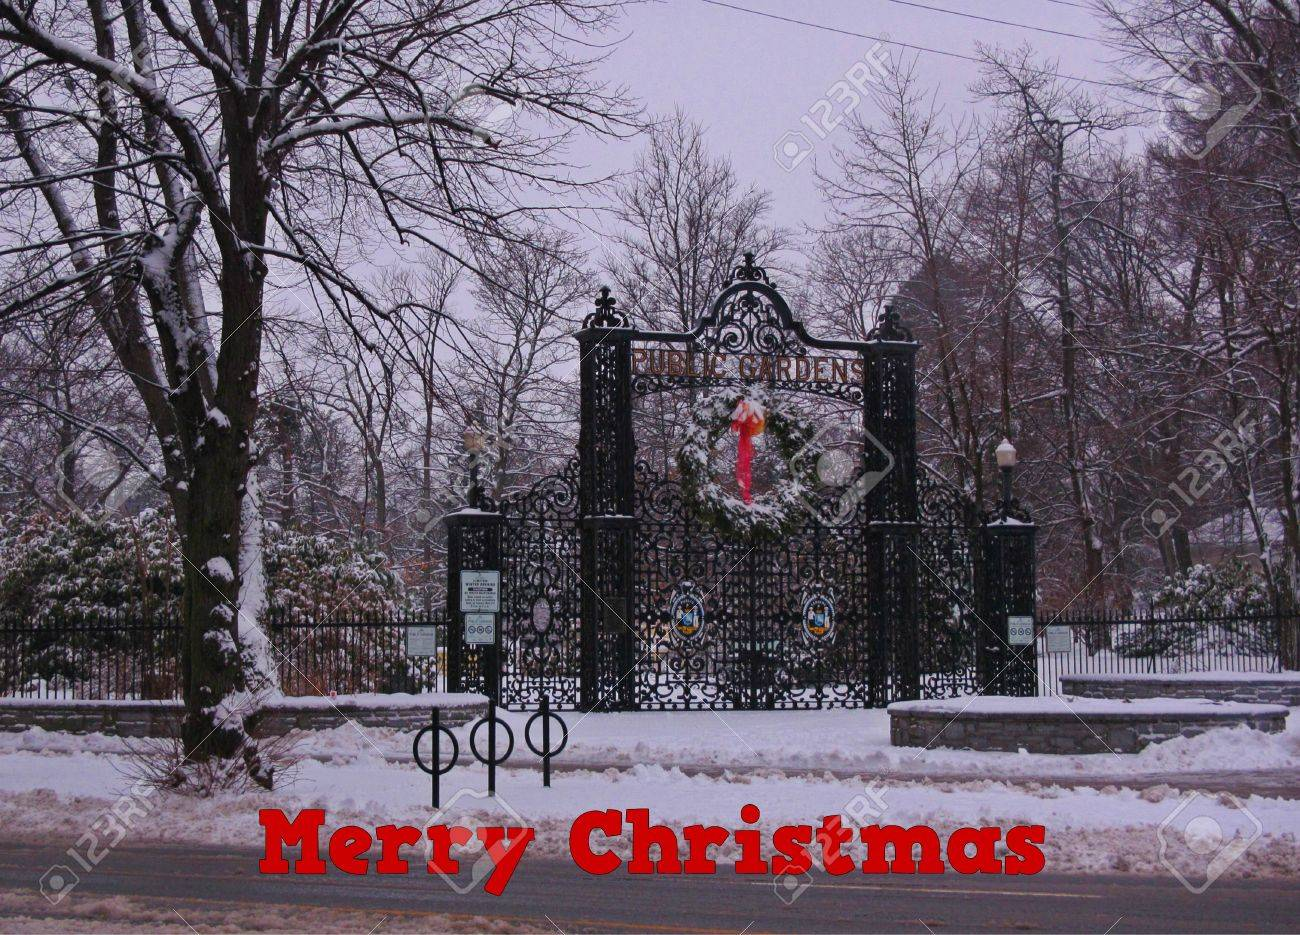 Halifax Christmas Card I Created From A Photograph Of Halifax ...